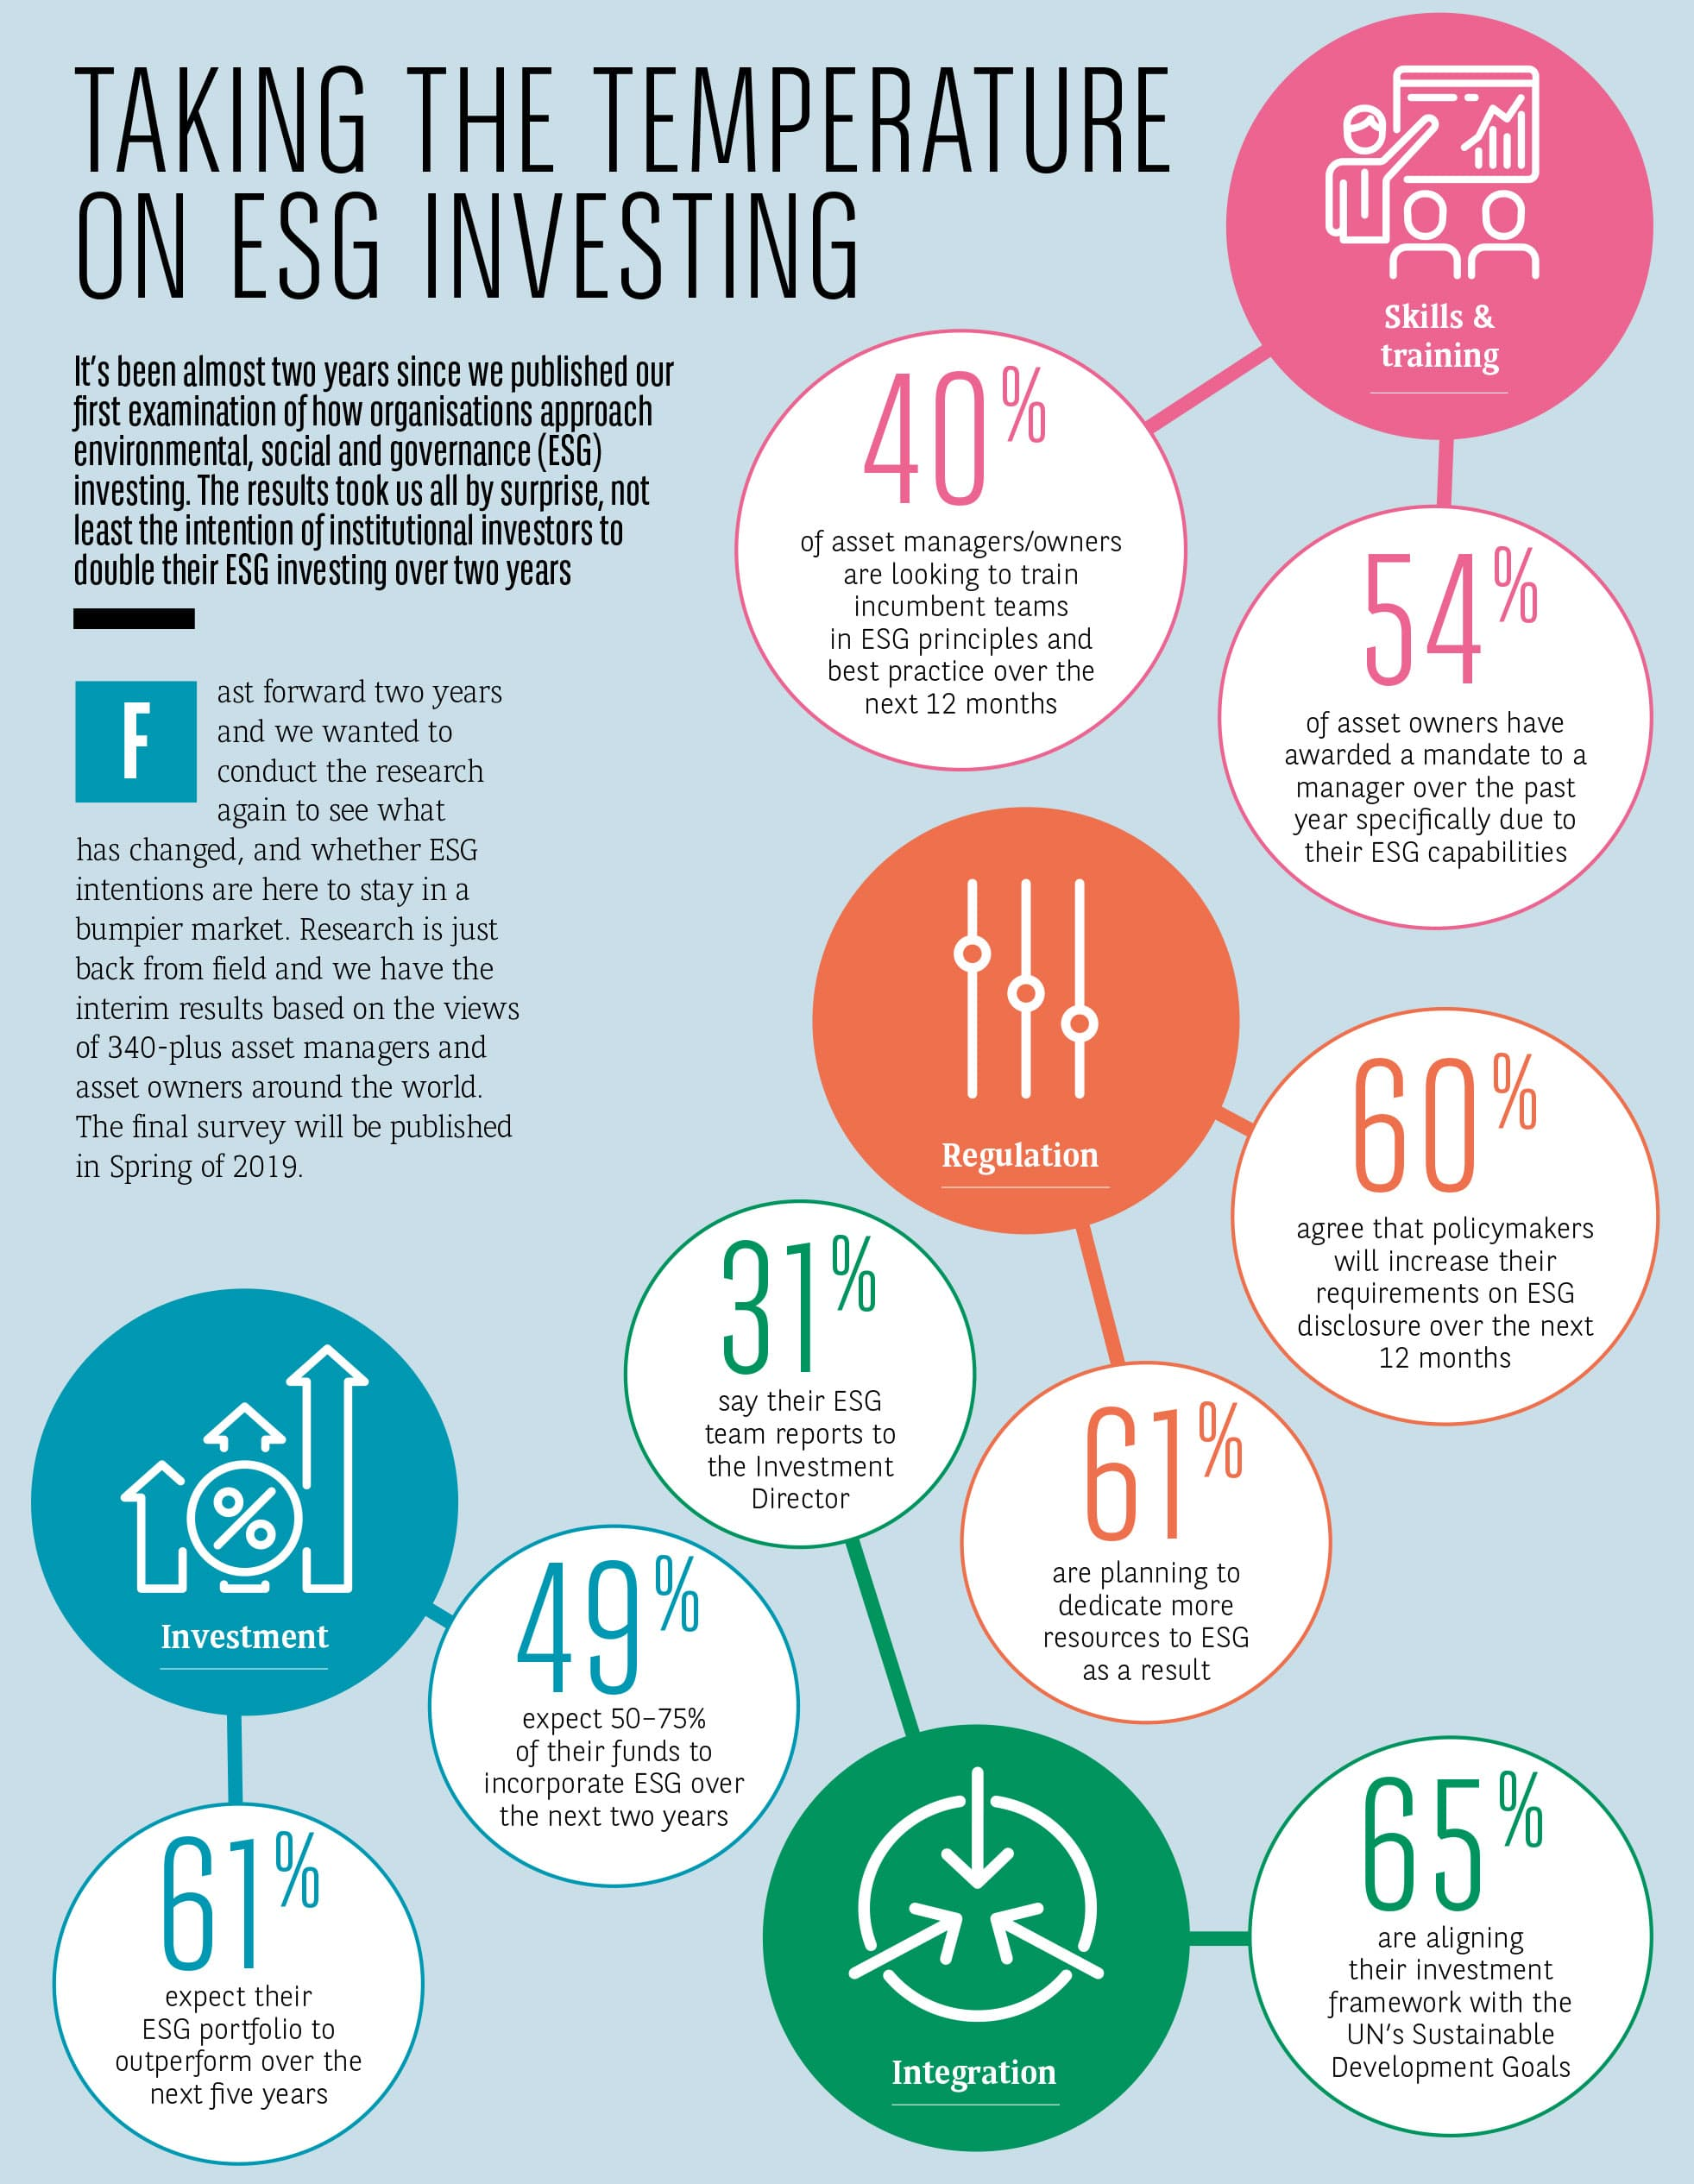 Institutional commitment to environmental, social, and governance (ESG) investing is rapidly increasing.